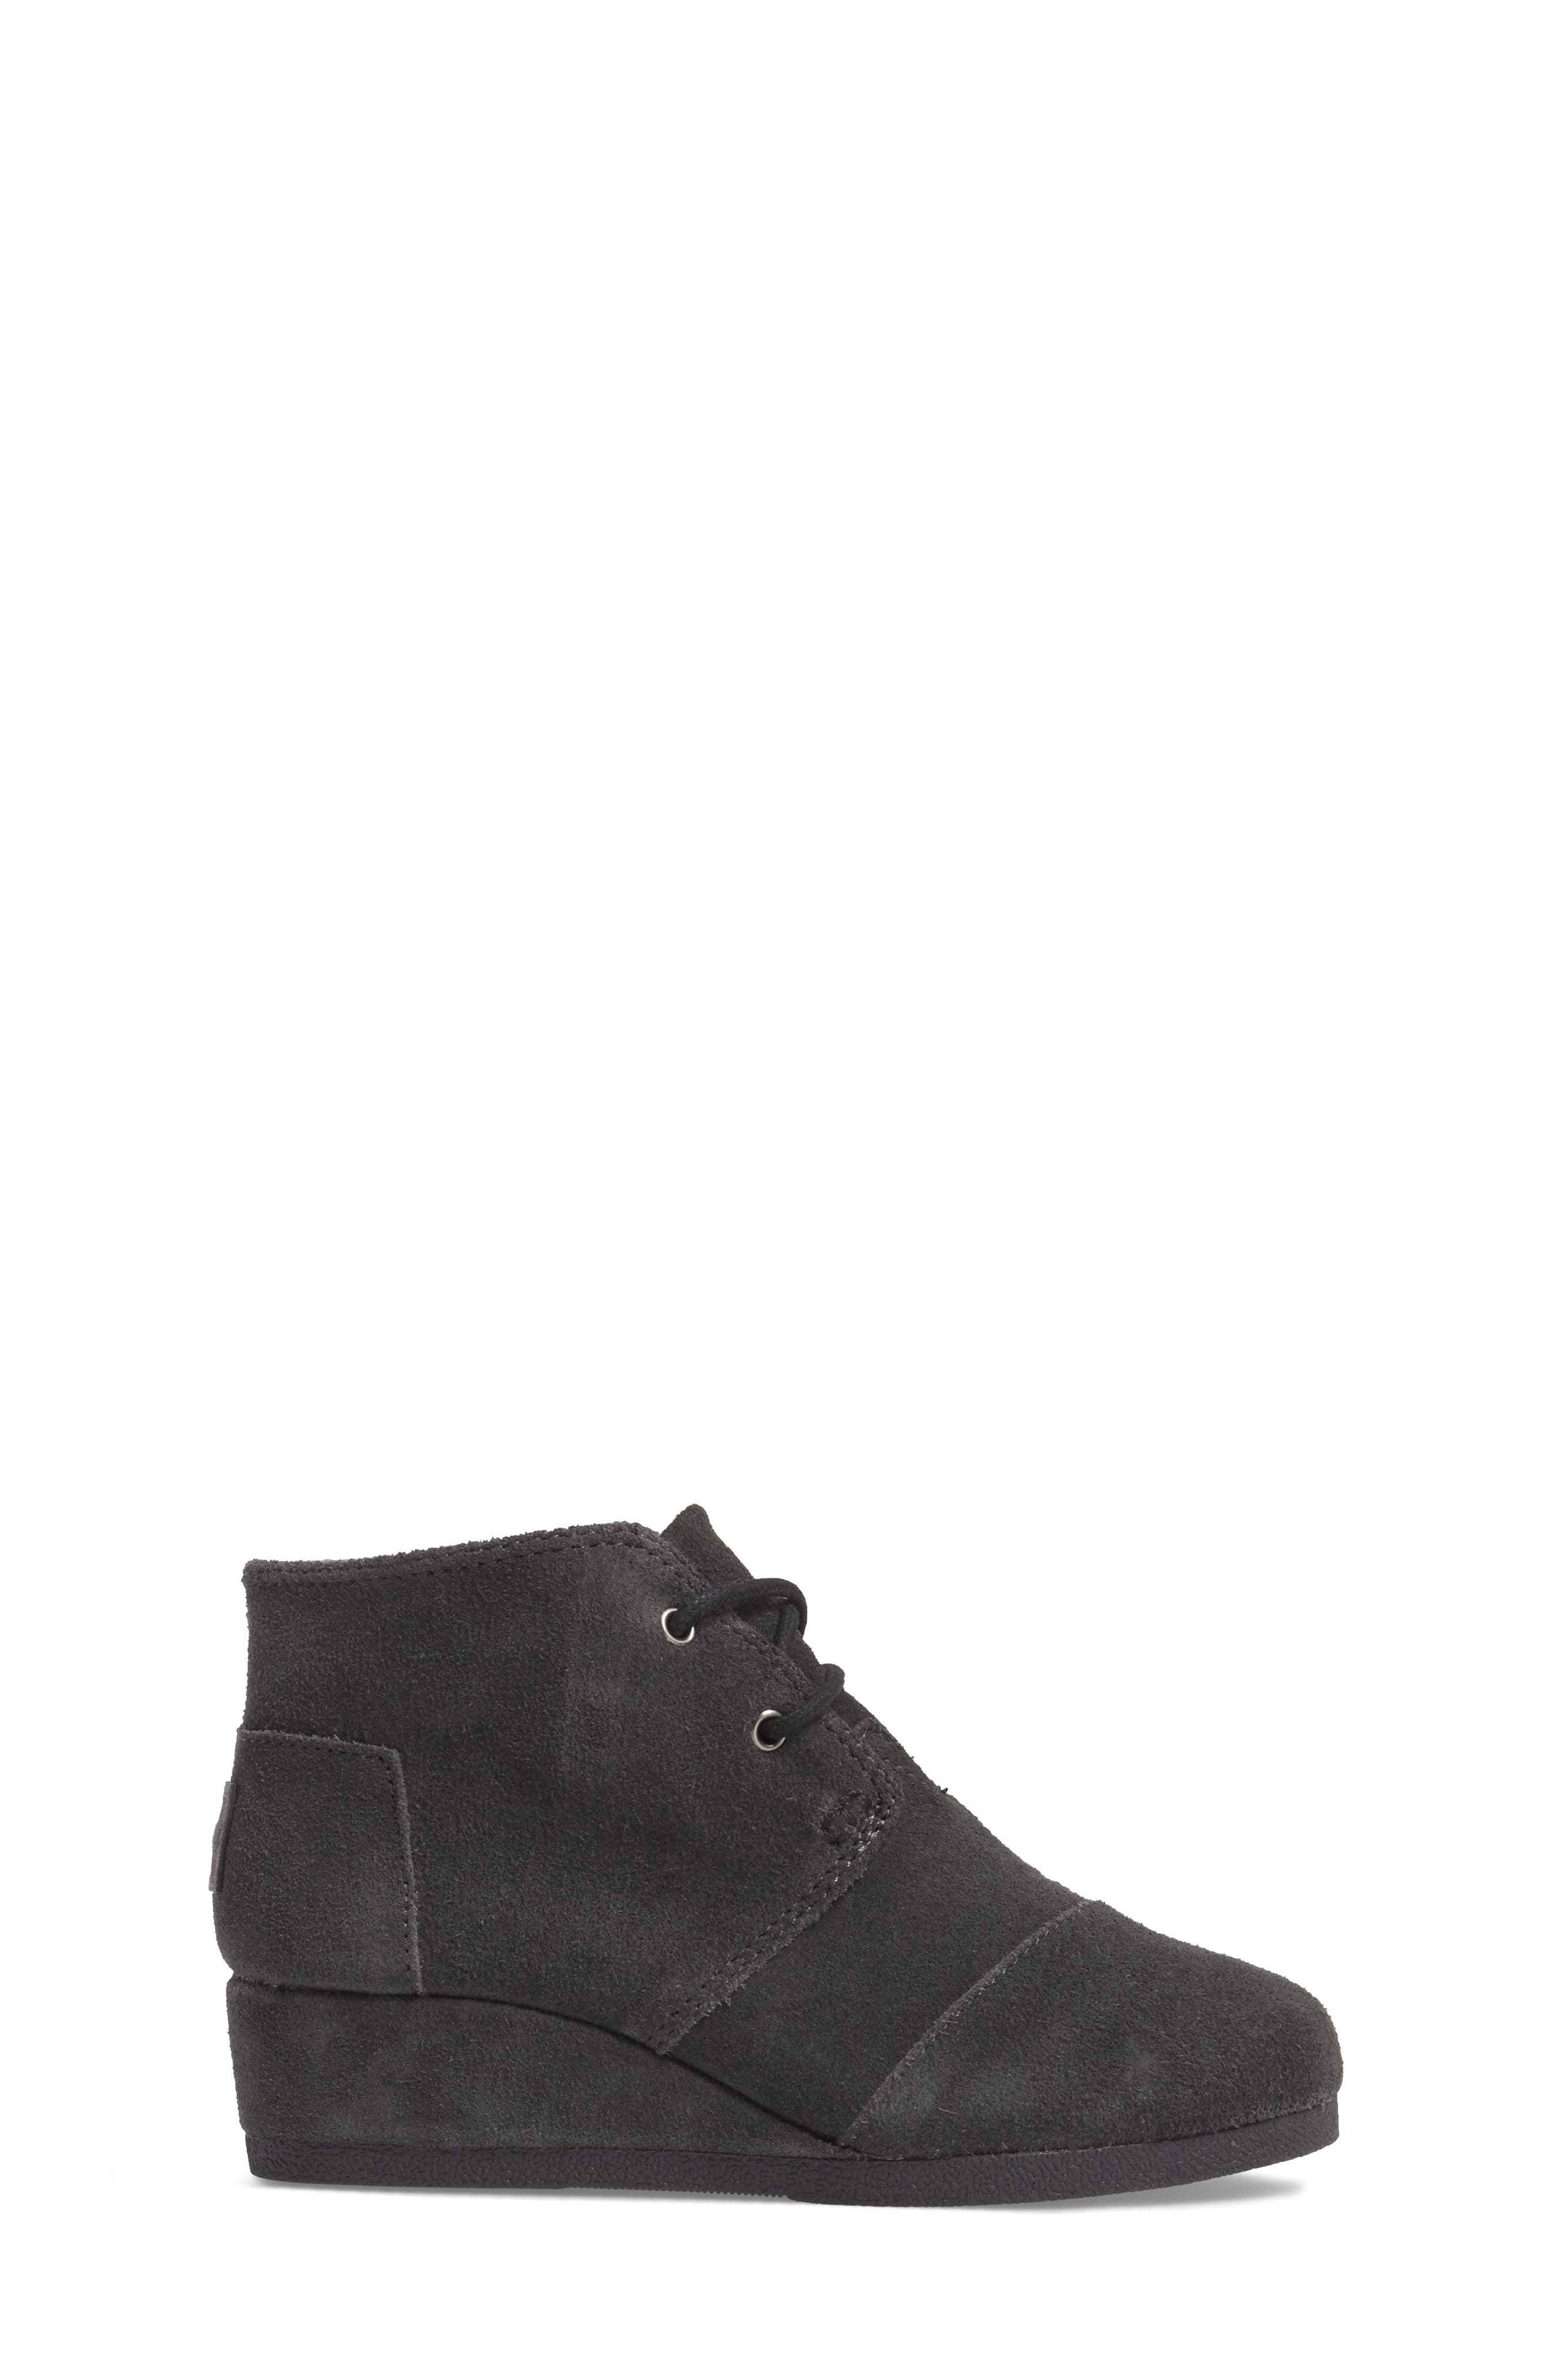 'Desert - Youth' Wedge Bootie,                             Alternate thumbnail 3, color,                             021